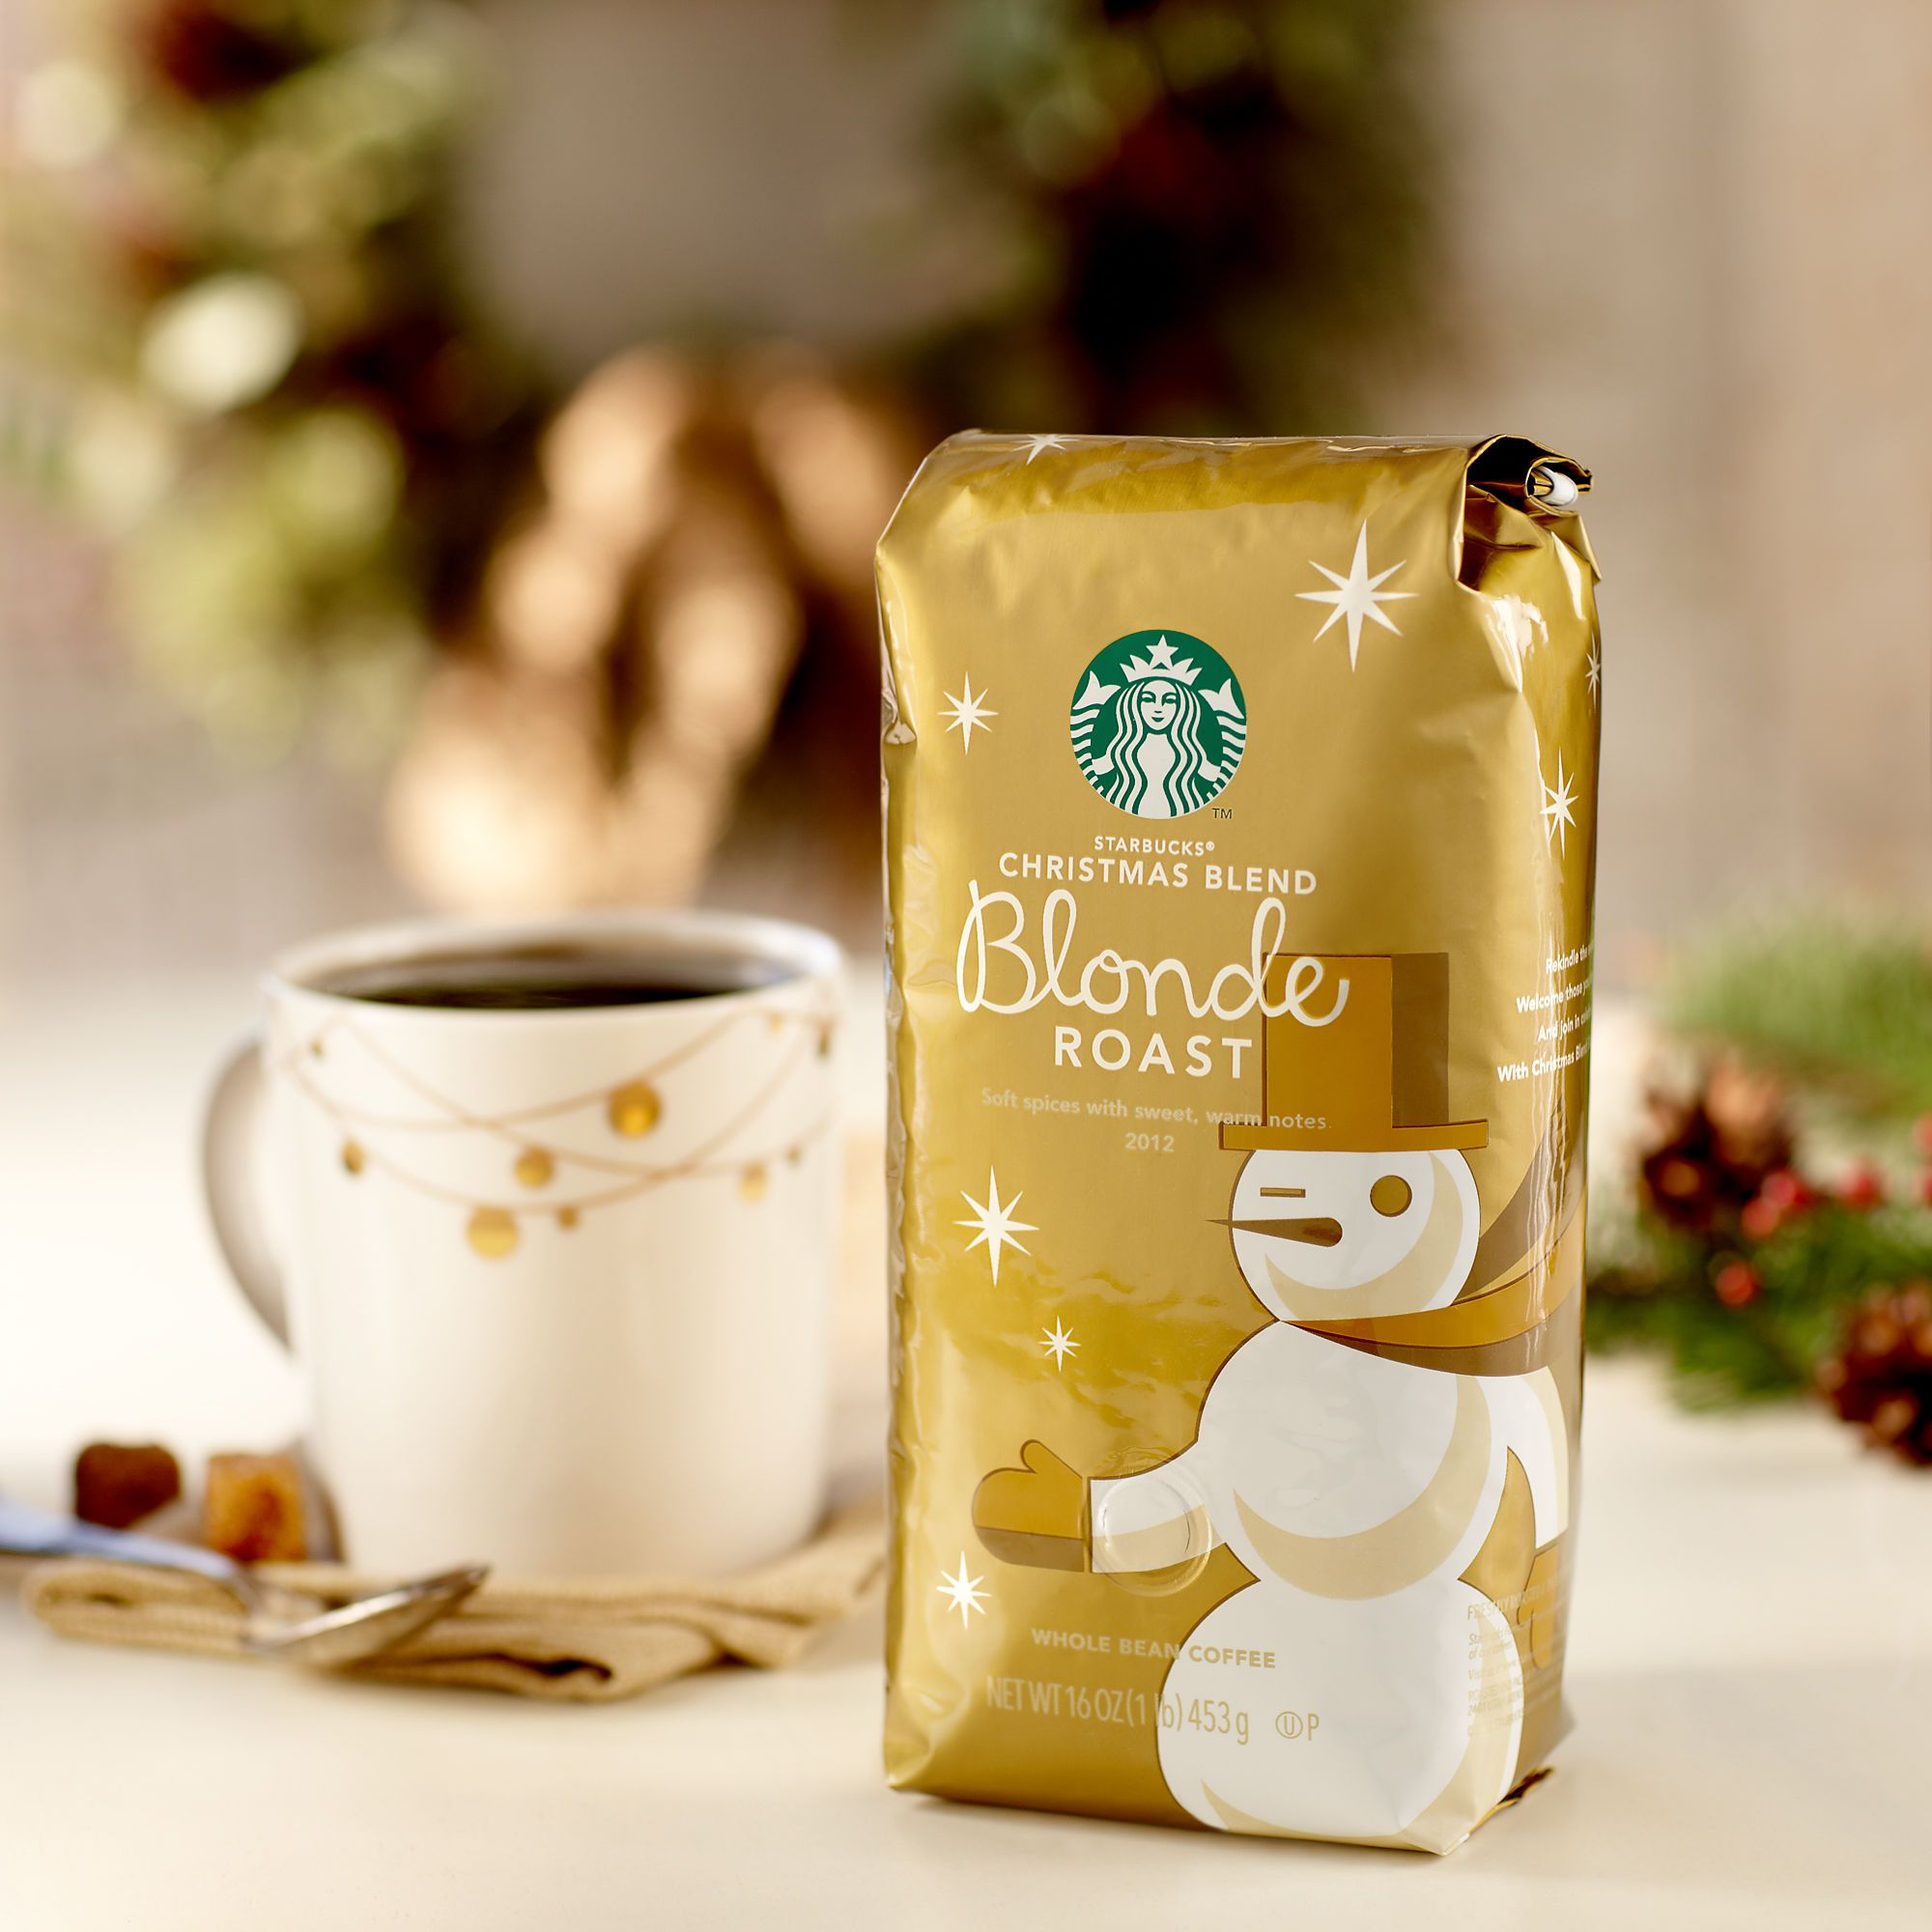 Starbucks® Christmas Blend Blonde Roast Starbucks